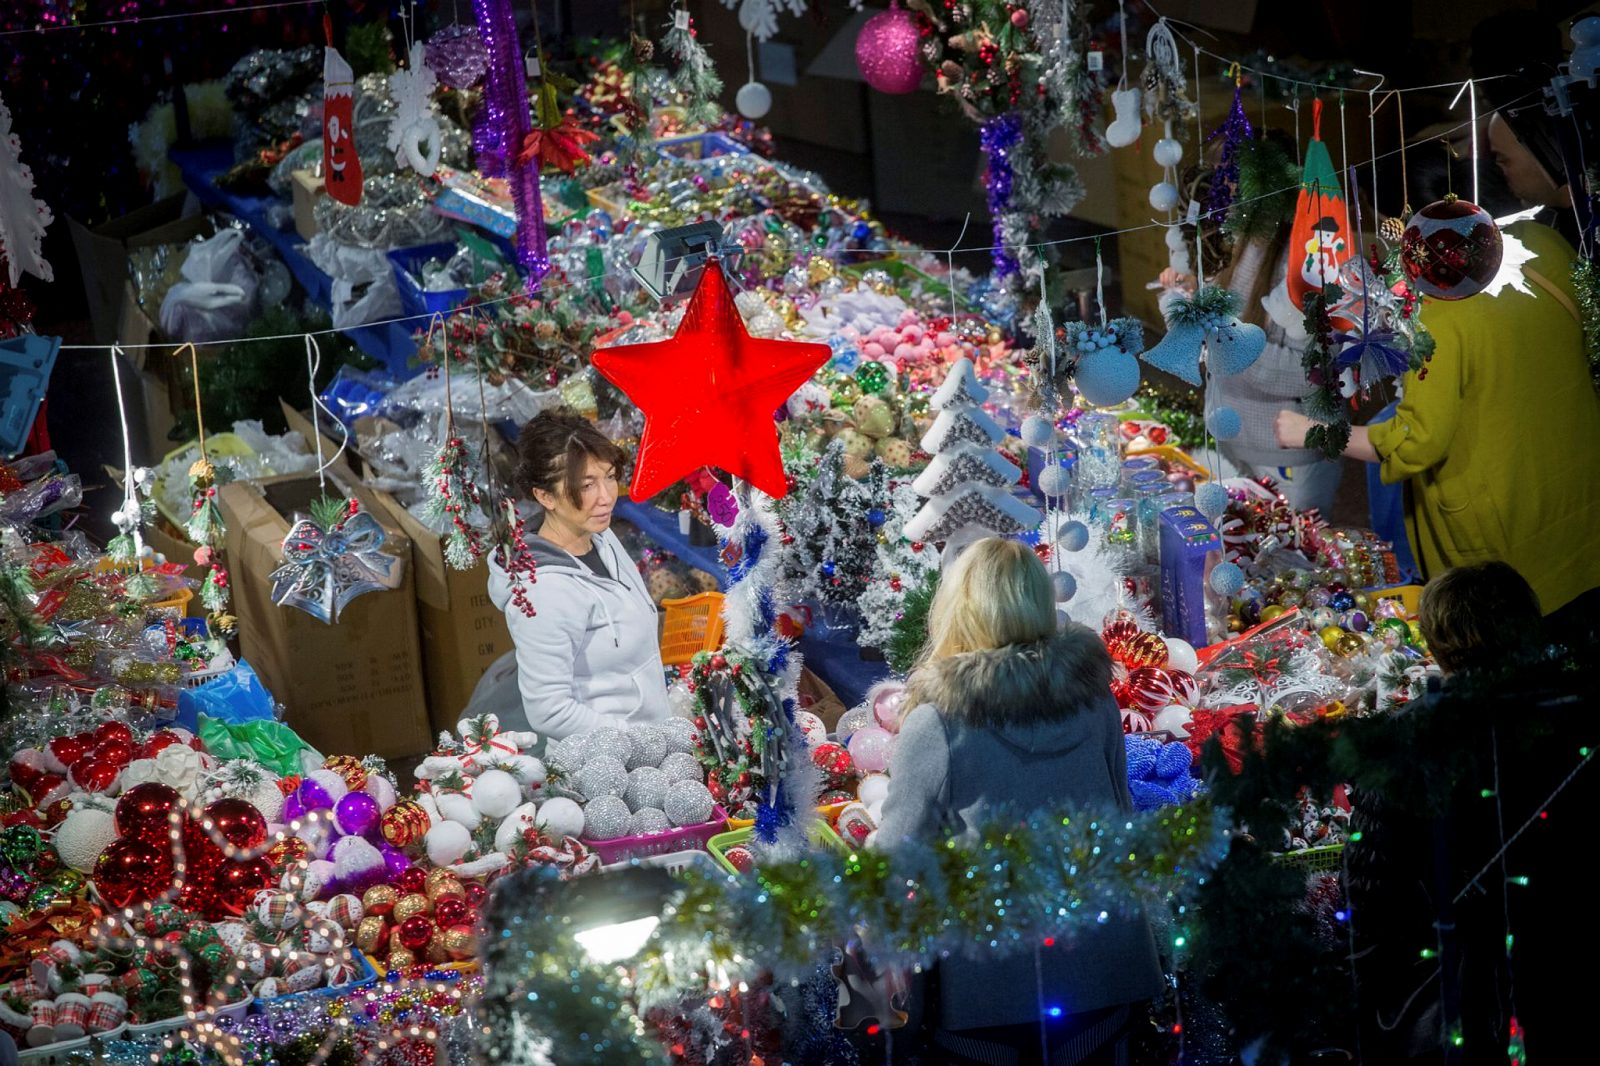 Christmas Scenes Images.10 Unforgettable Christmas Scenes From Israel Israel21c